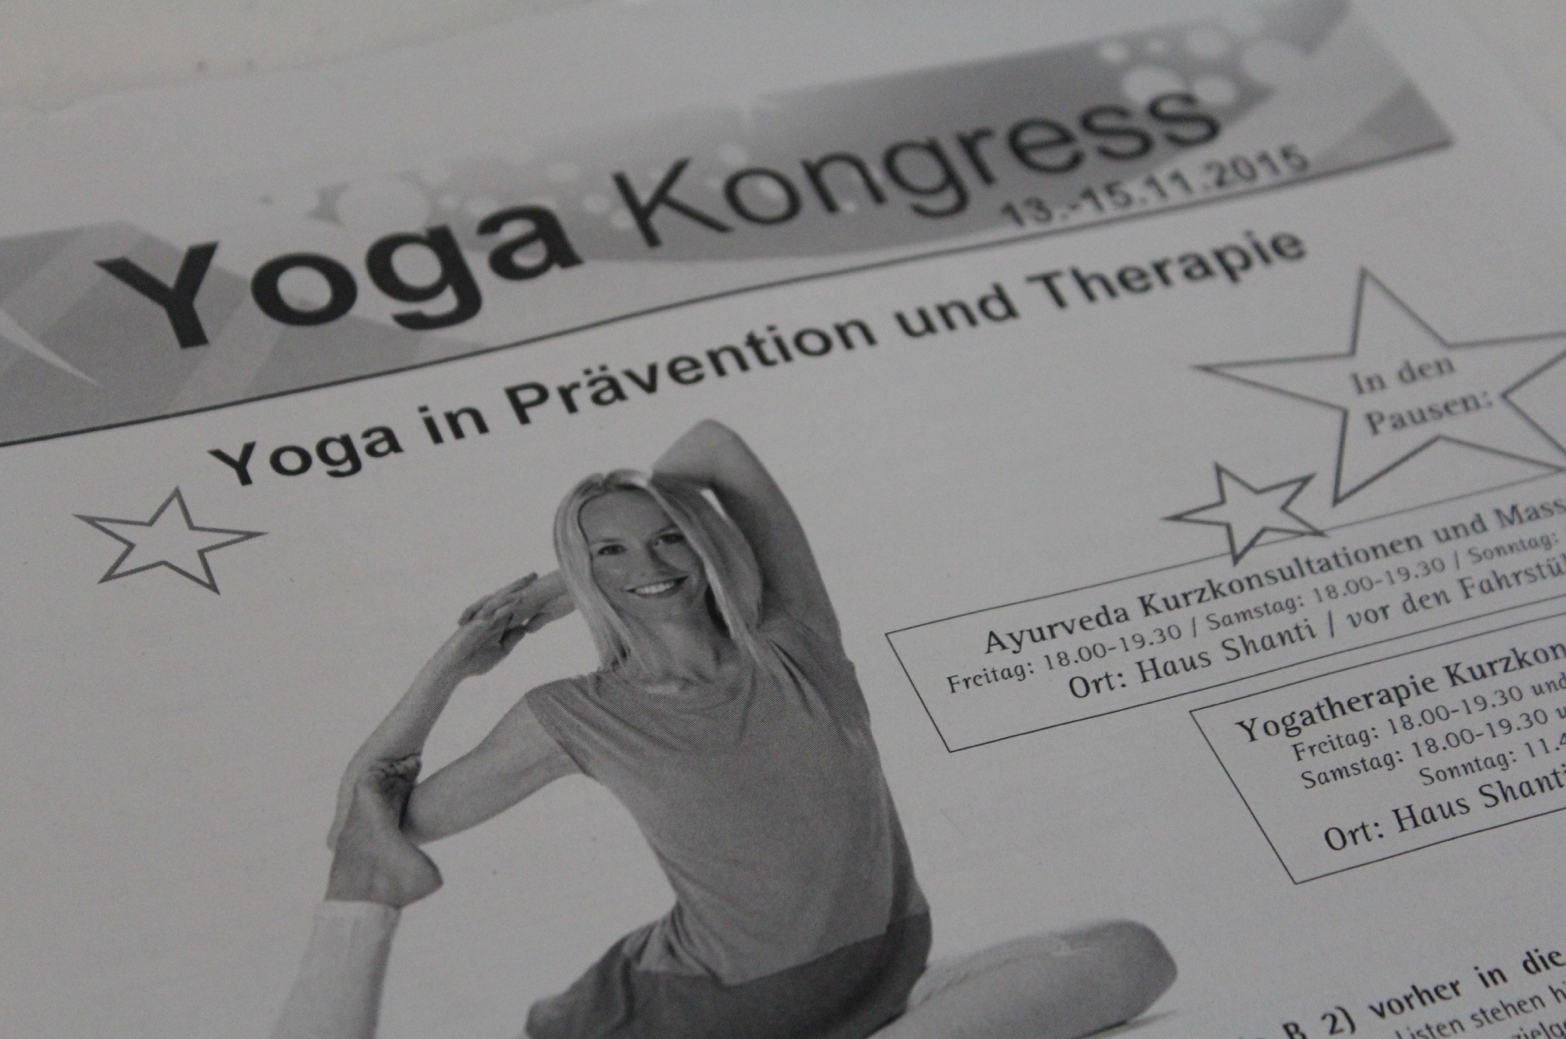 12 Yoga Kongress Yogatherapie